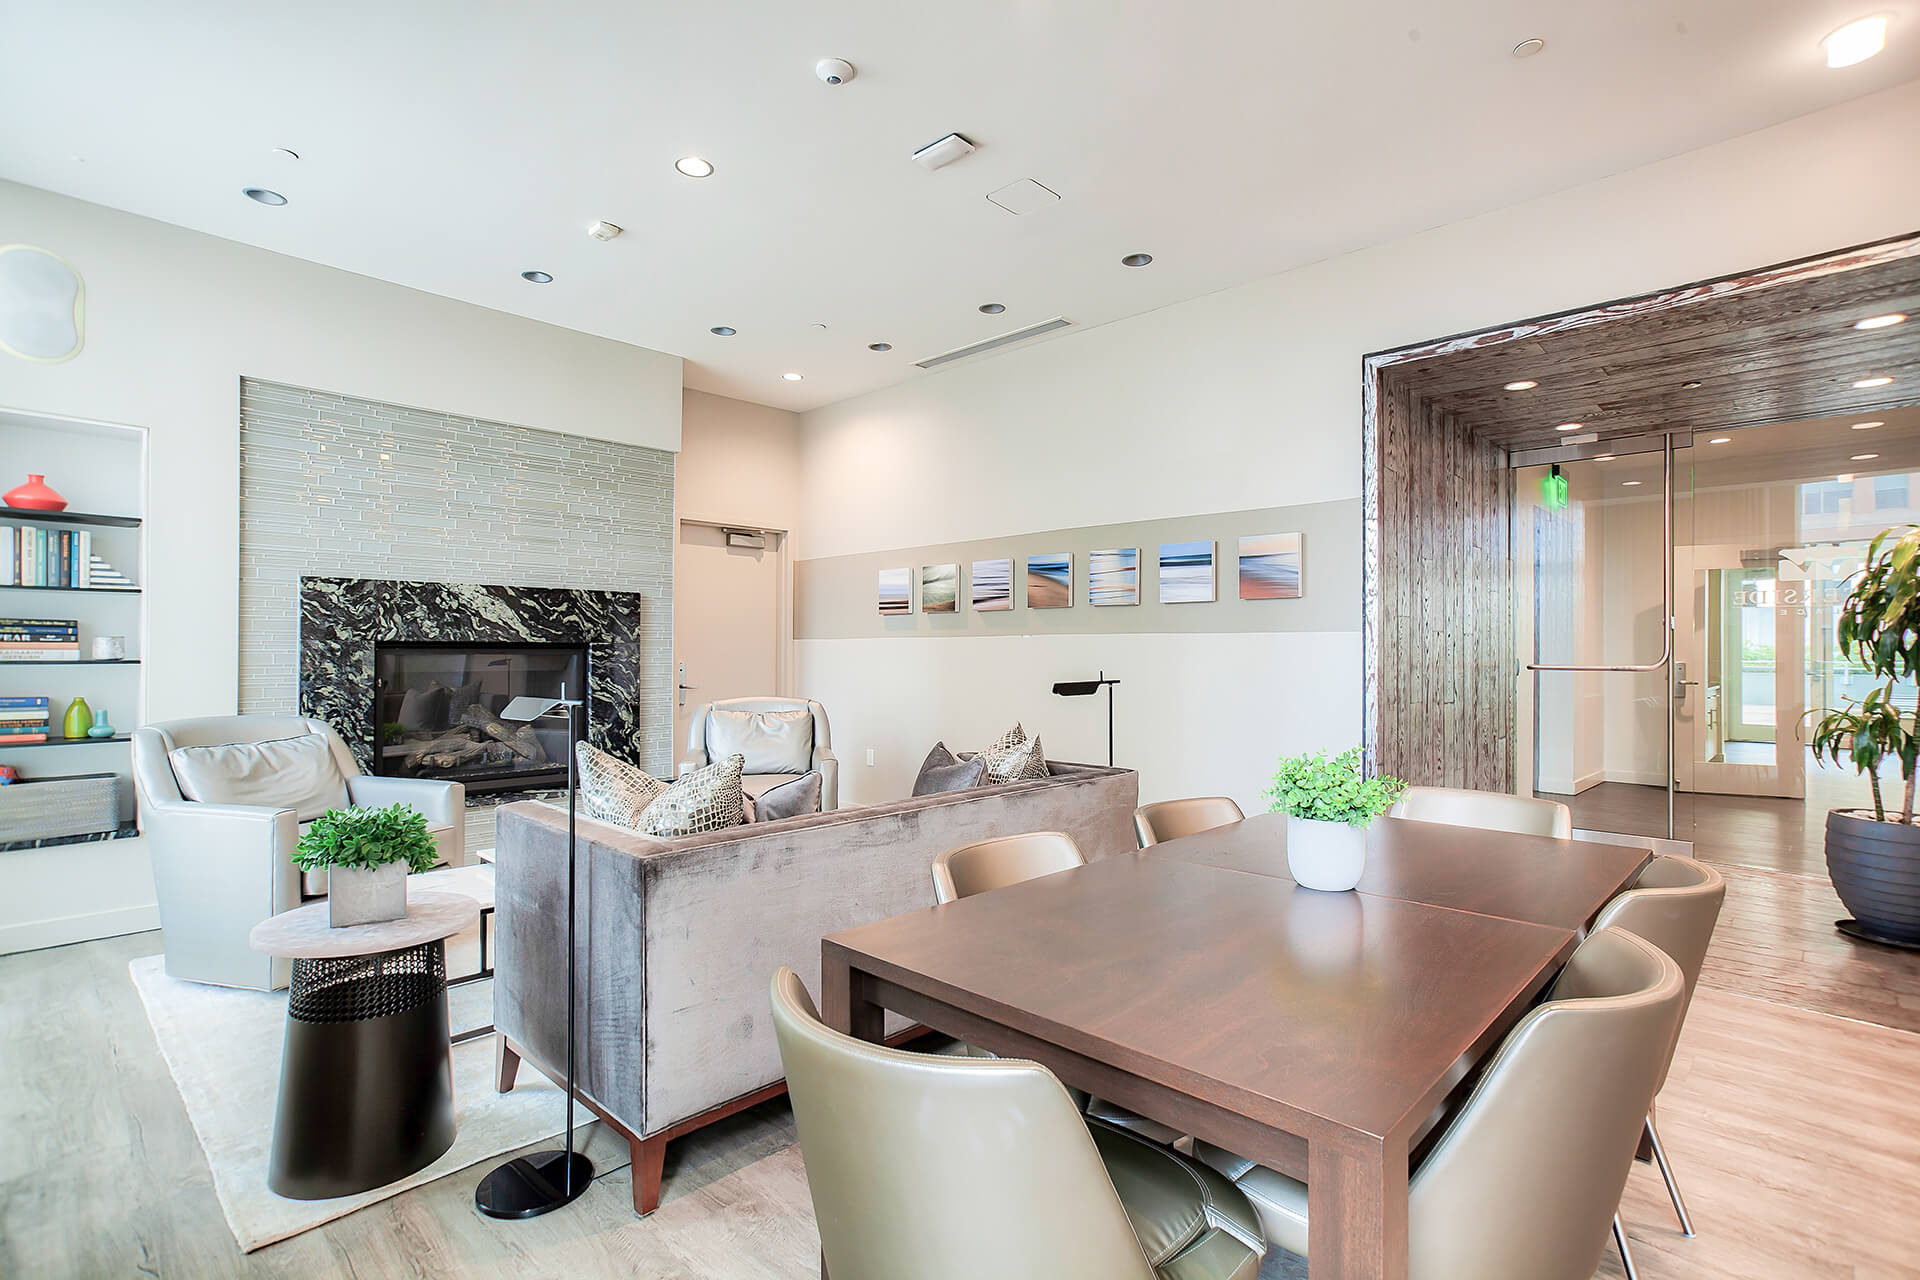 Cozy Fireside Resident Lounge at Waterside Place by Windsor, Massachusetts, 02210